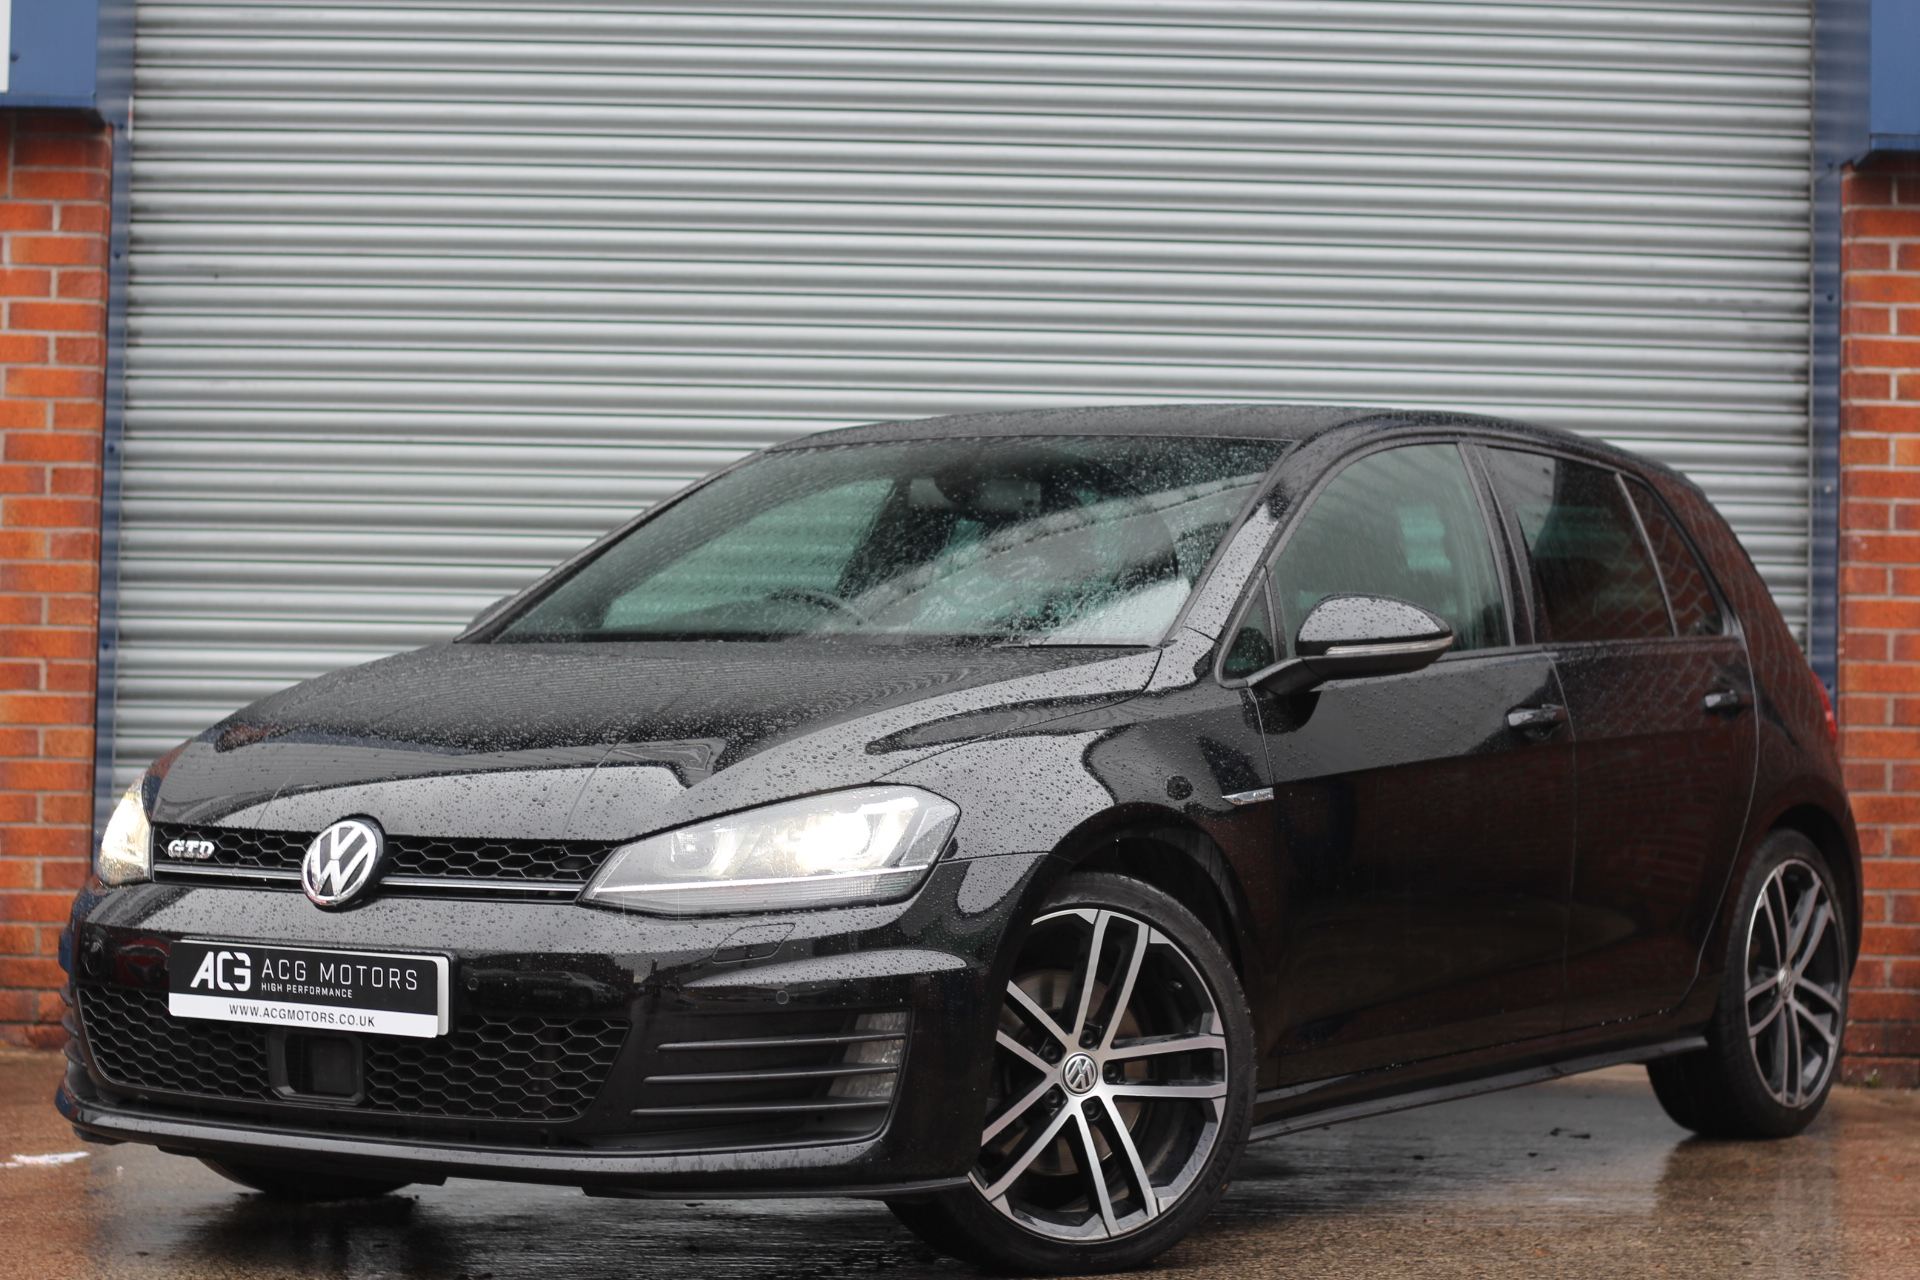 2015 (65) Volkswagen Golf 2.0 TDI BlueMotion Tech GTD 5dr